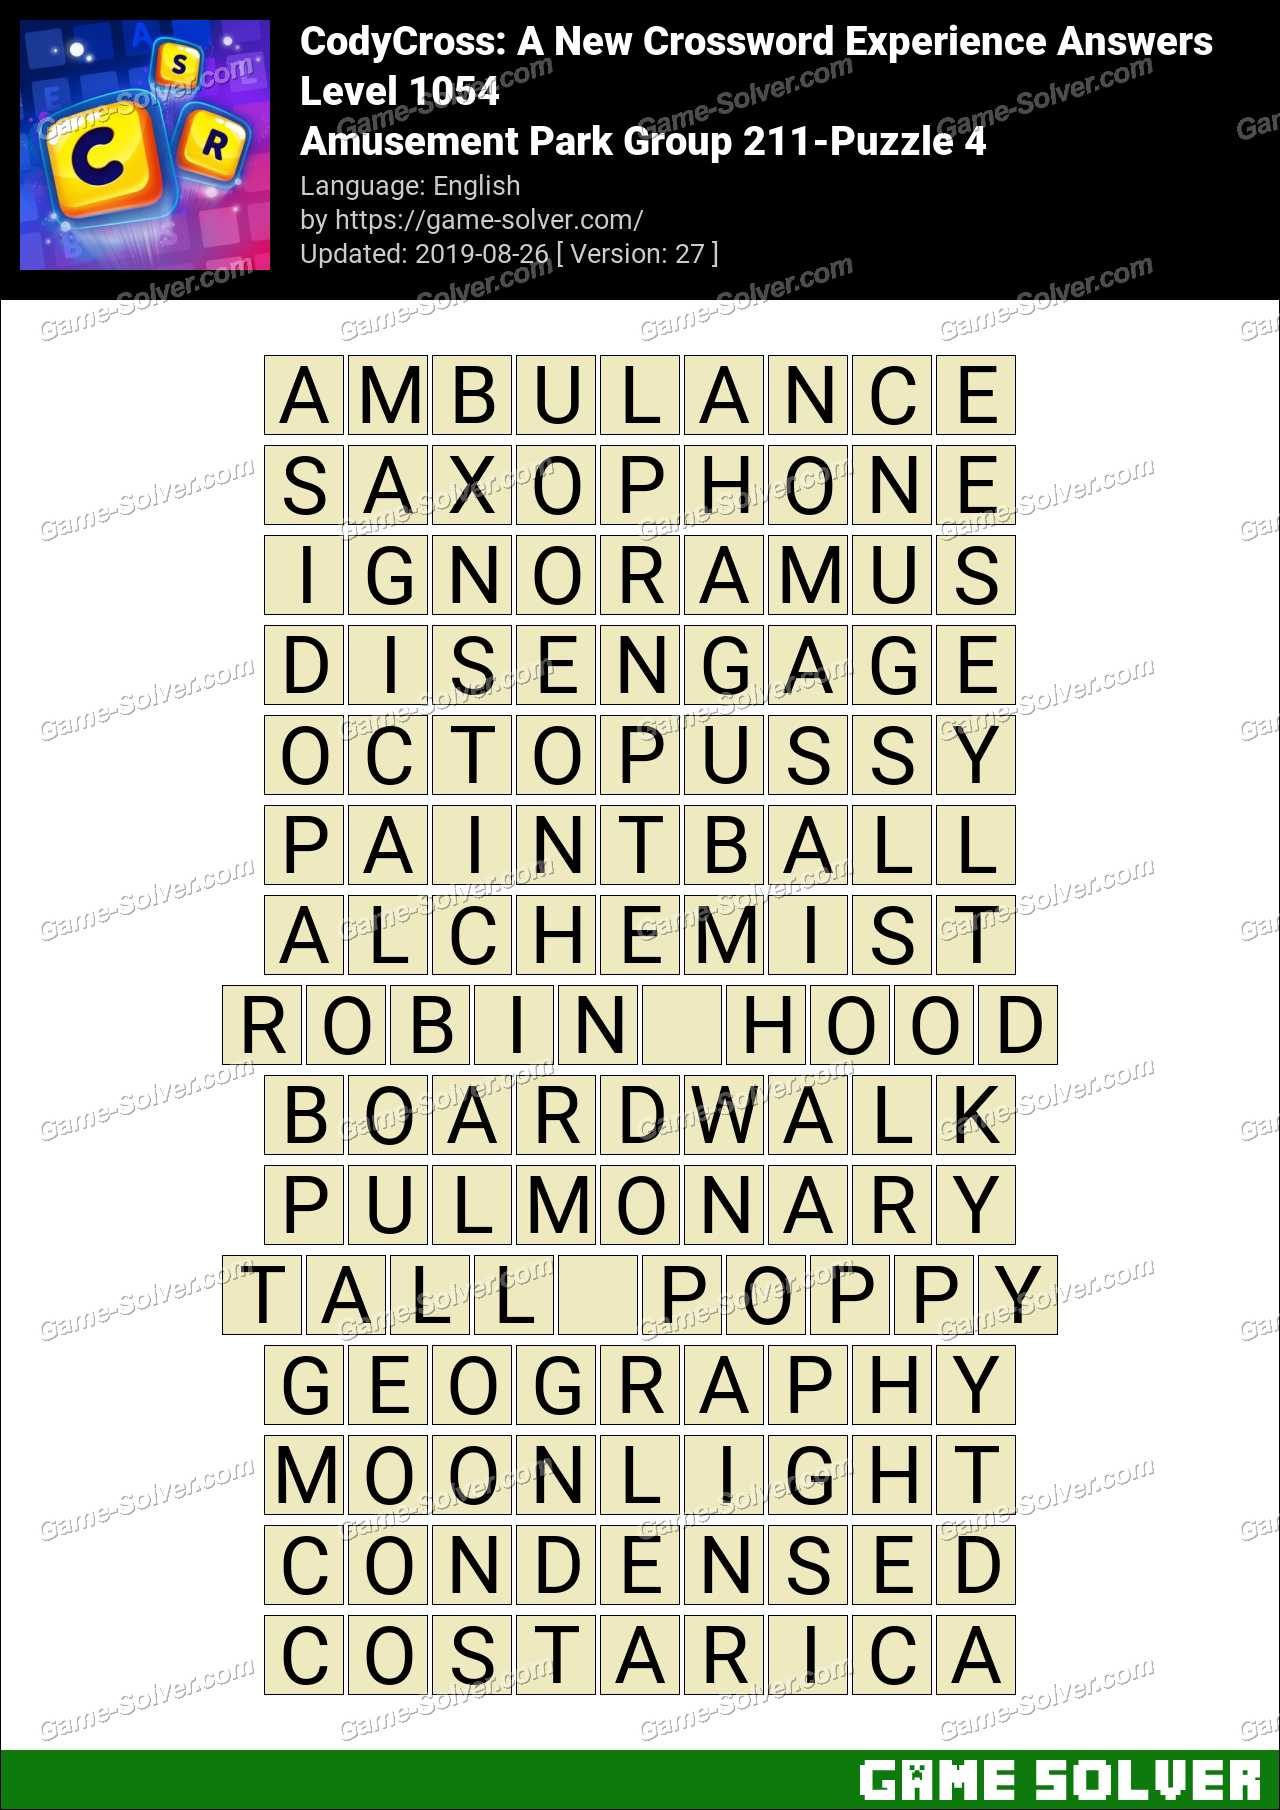 CodyCross Amusement Park Group 211-Puzzle 4 Answers - Game